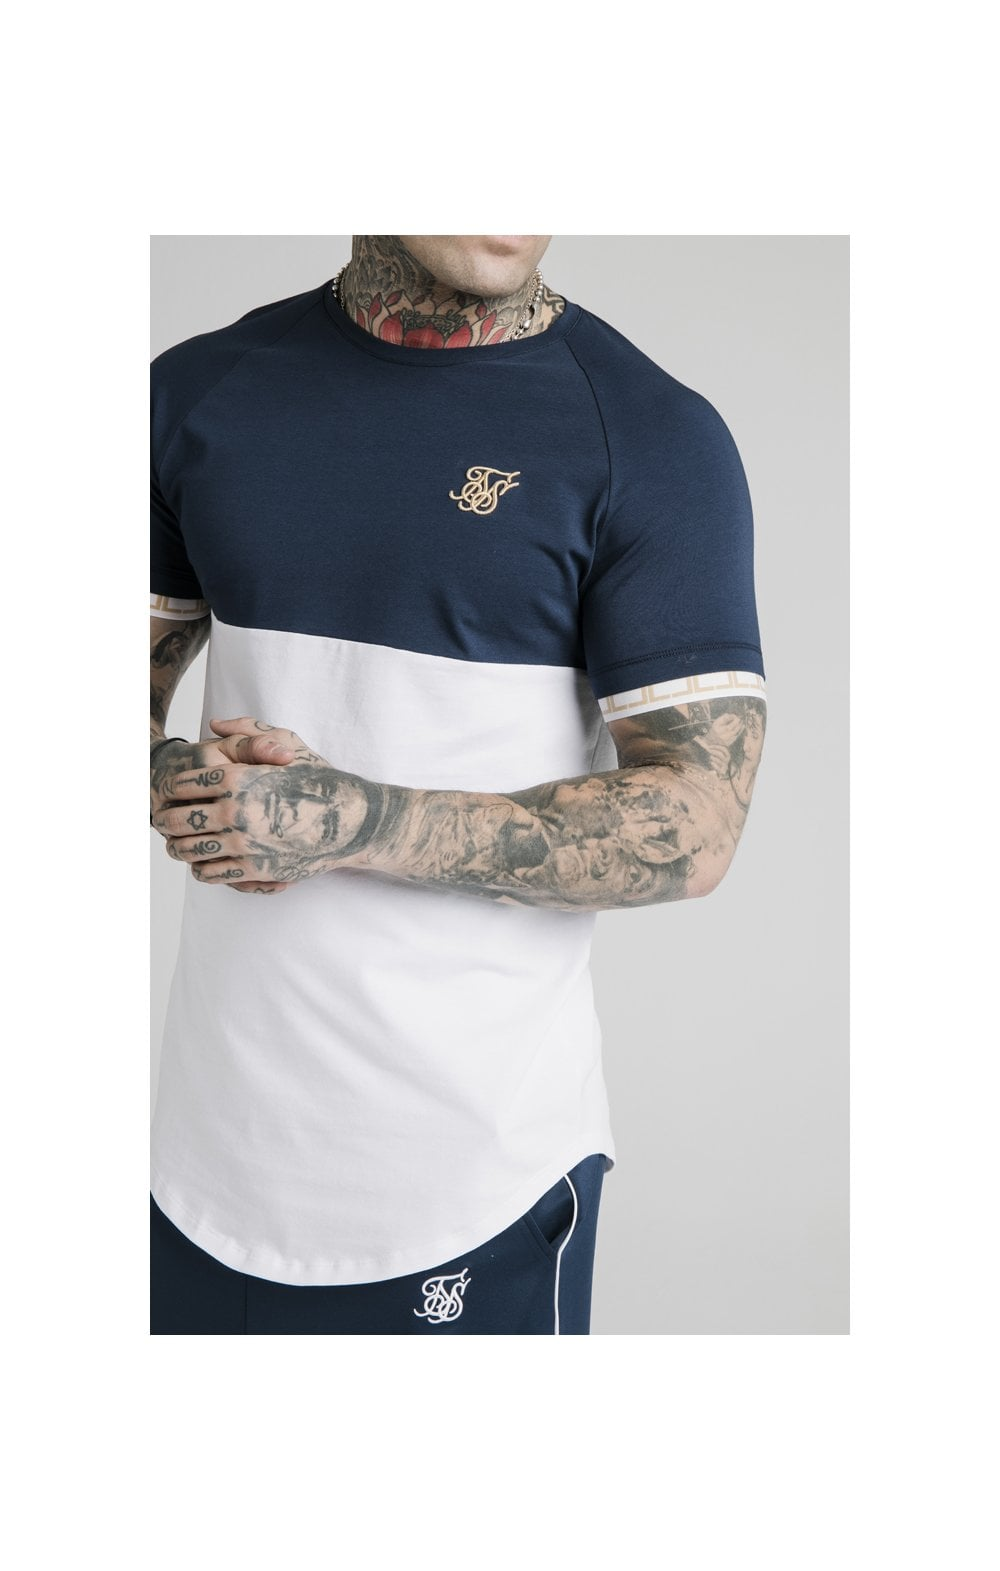 SikSilk S/S Cut & Sew Tech Tee - Navy & White